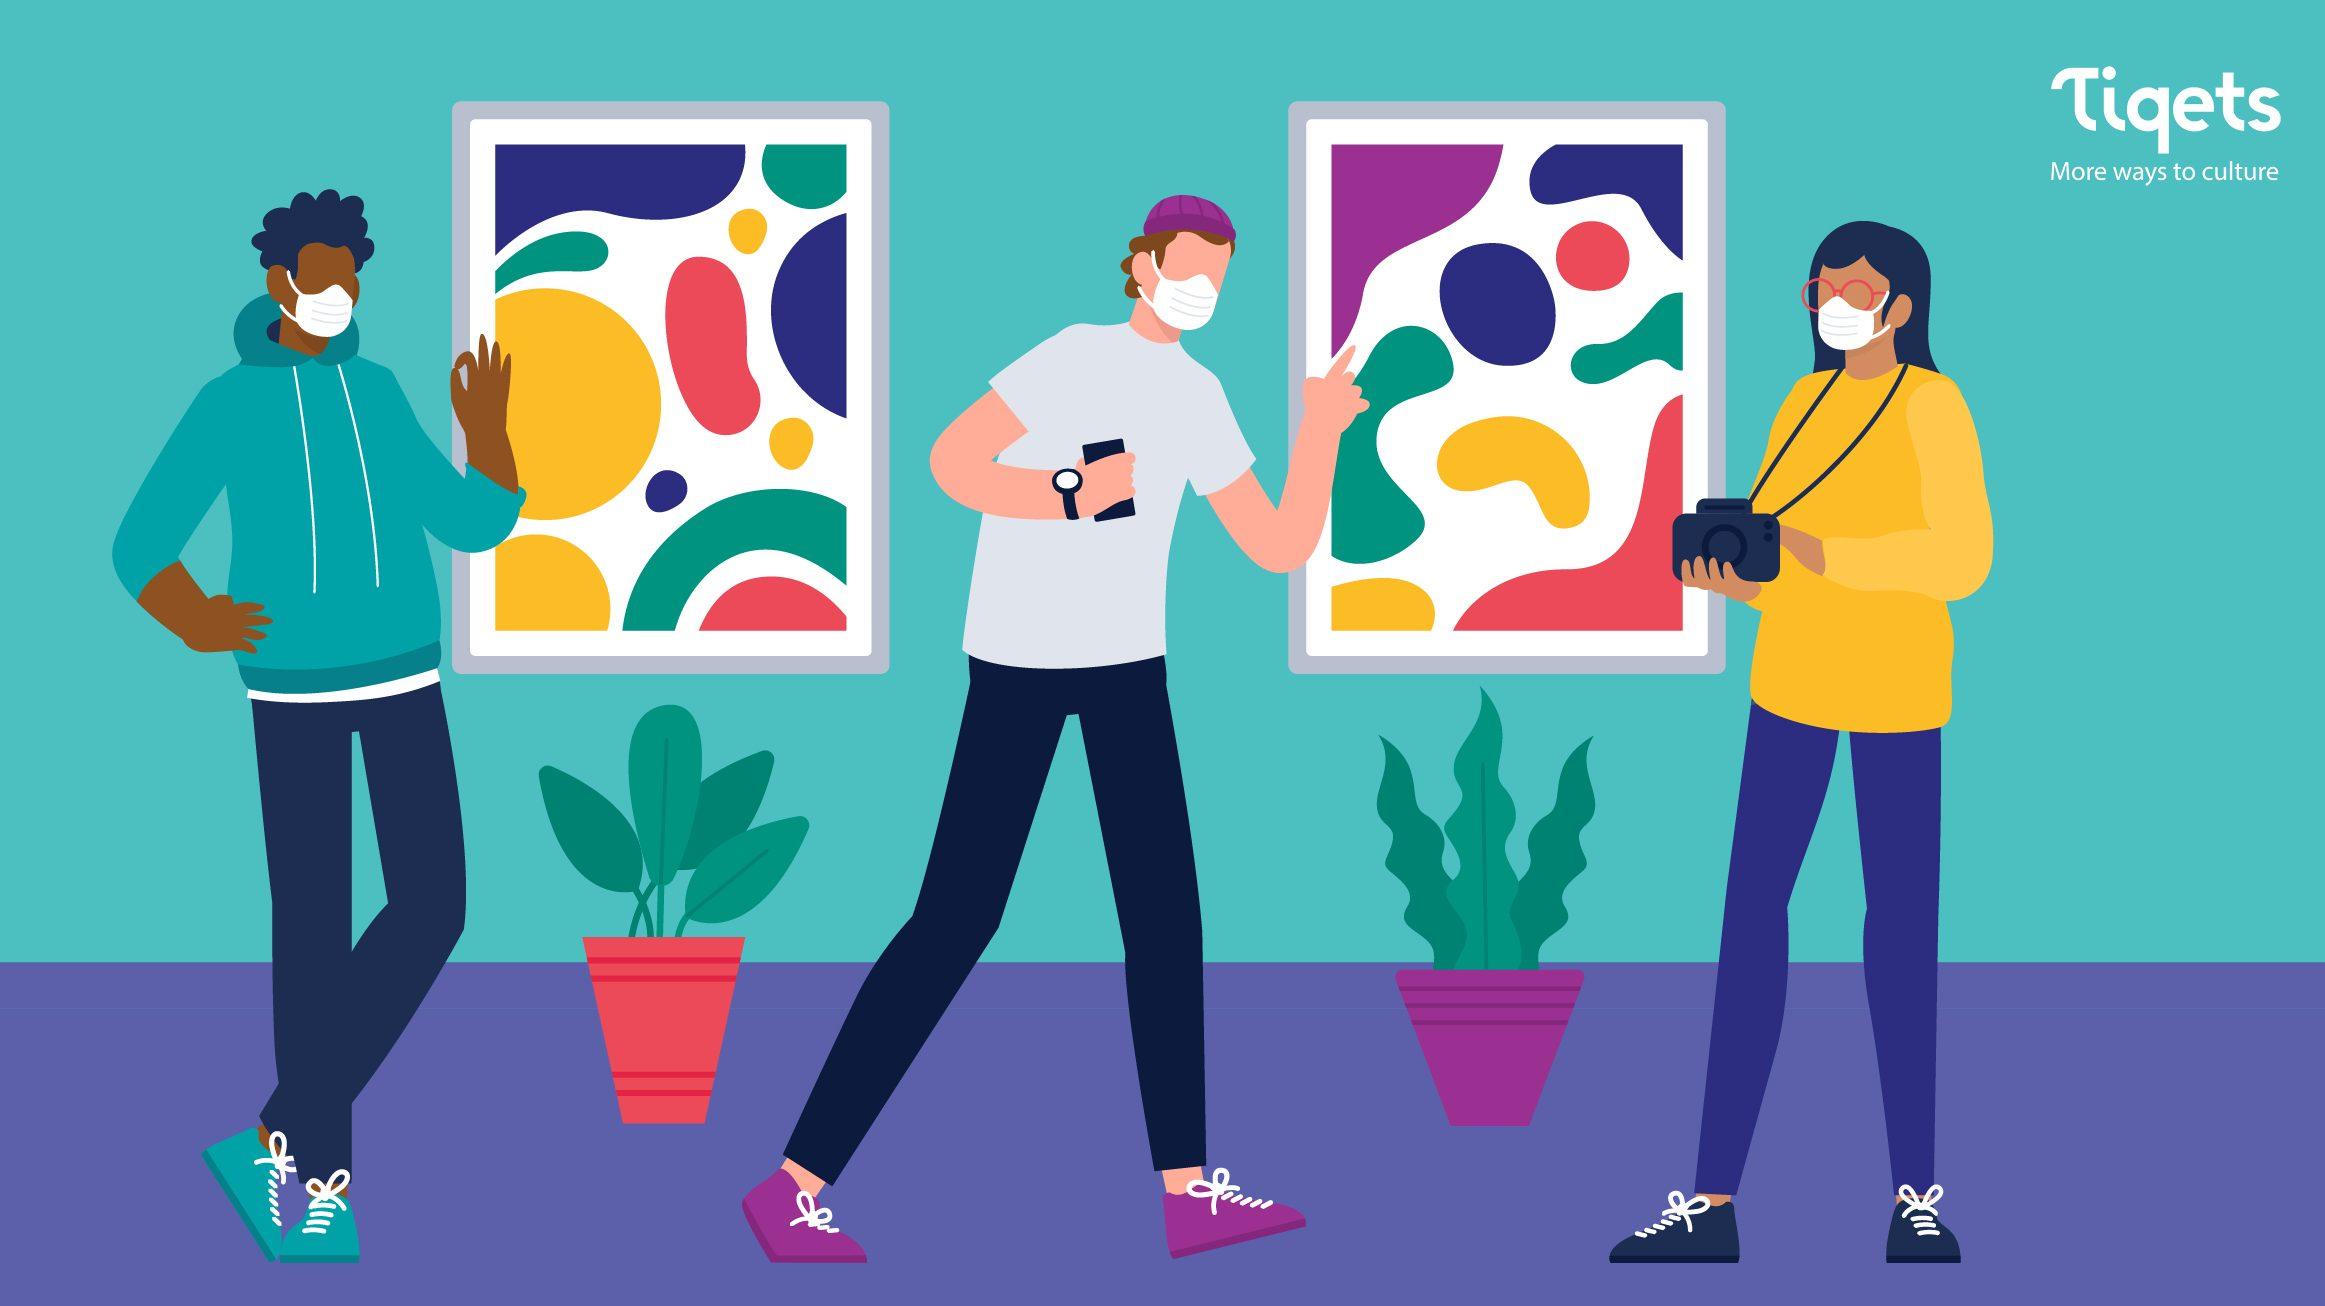 An illustration of three people wearing masks standing in a gallery with abstract paintings on the wall and plants on the floor